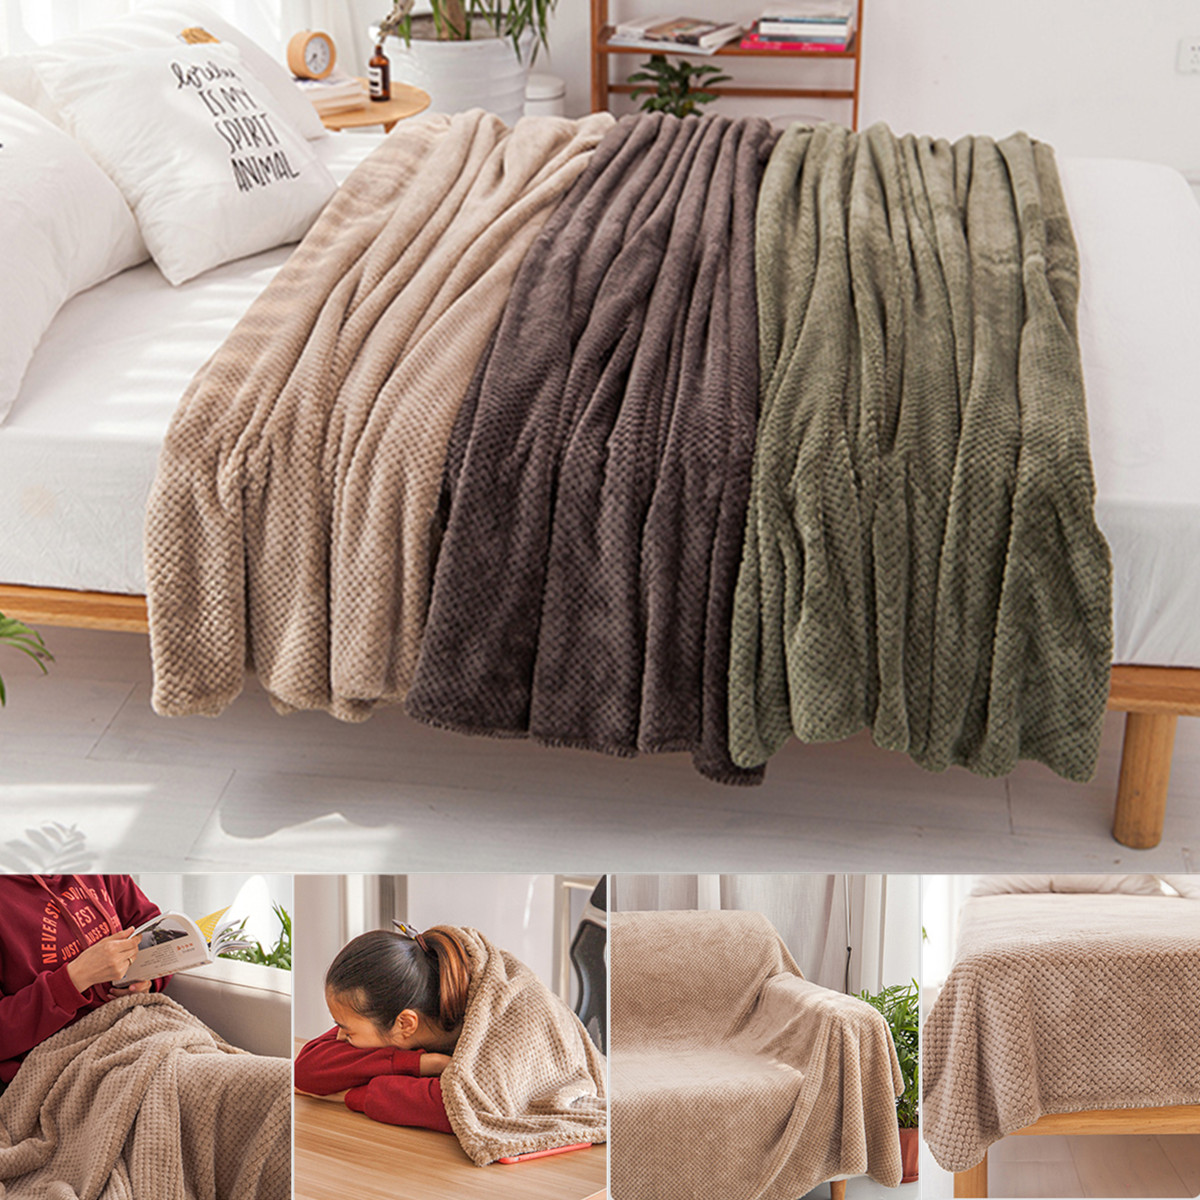 Bon 59u0027u0027x79u0027u0027 Coral Velvet Soft Warm Throw Blanket For Couch Throws Sofa Cover  Soft Bedding Throw Blanket   Walmart.com